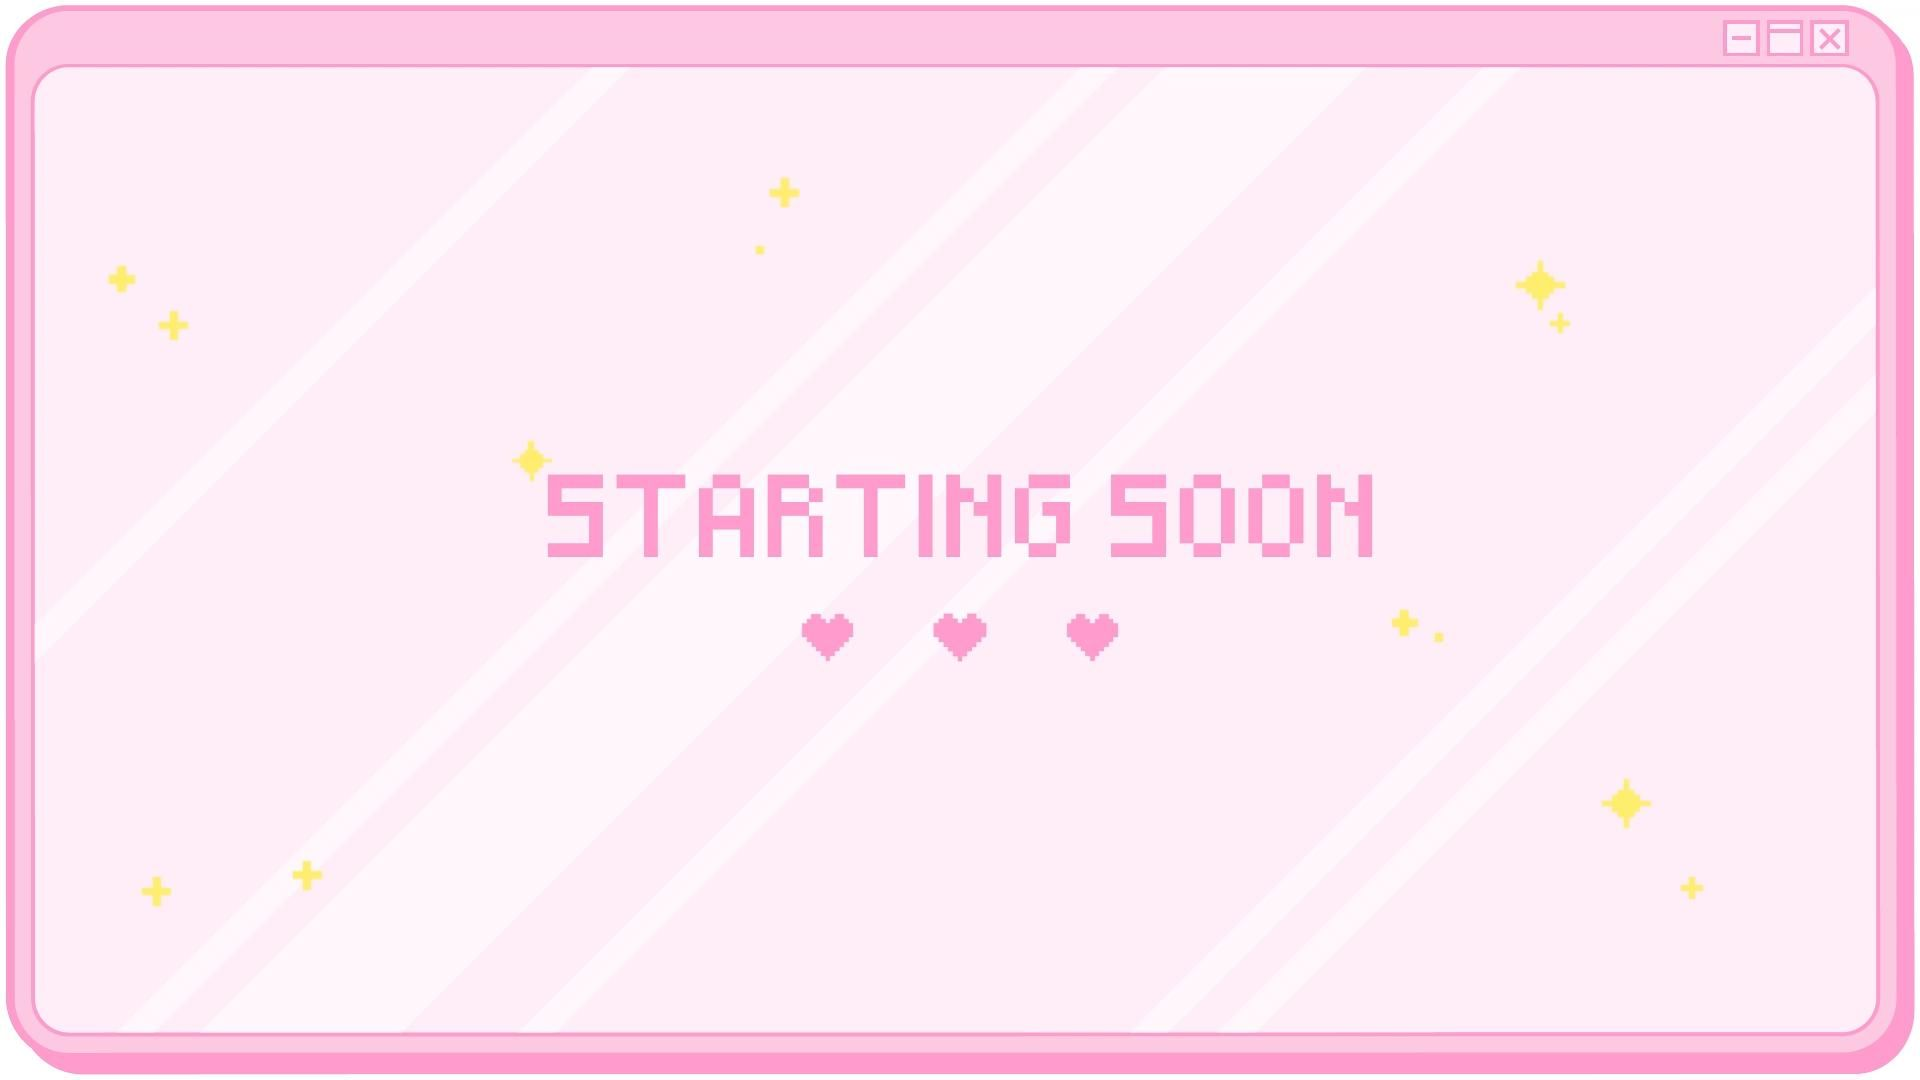 Animated Twitch Cute Pink Pixel Pop Up Box Window Screens Offline Brb Starting Soon Kawaii Streamer Sparkle Video Video Overlays Cute Video Design Youtube Twitch